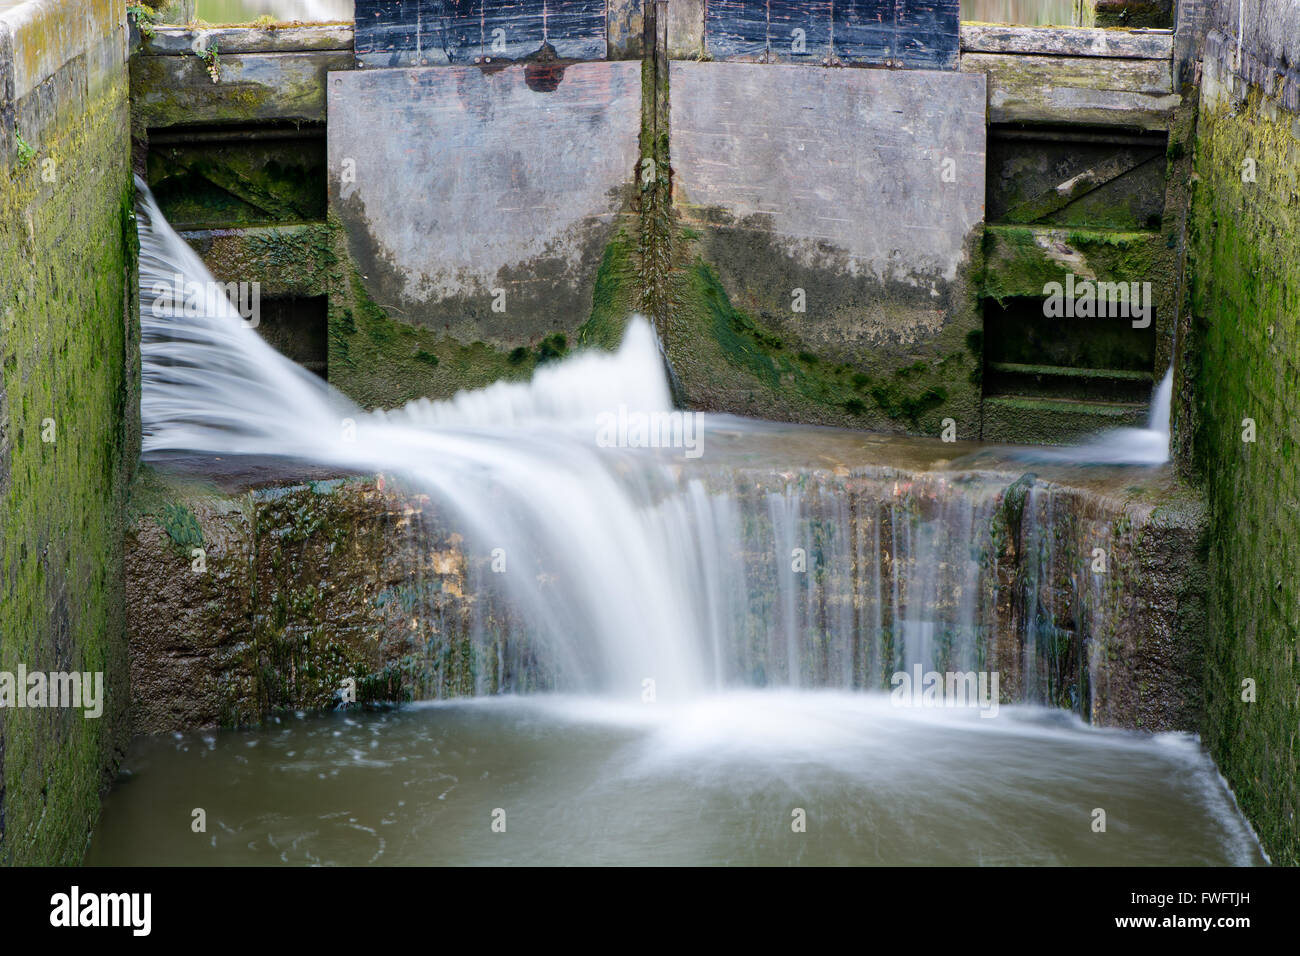 Canal lock cill with water spilling through gate. Lock with water escaping at high pressure through gaps, splashing - Stock Image